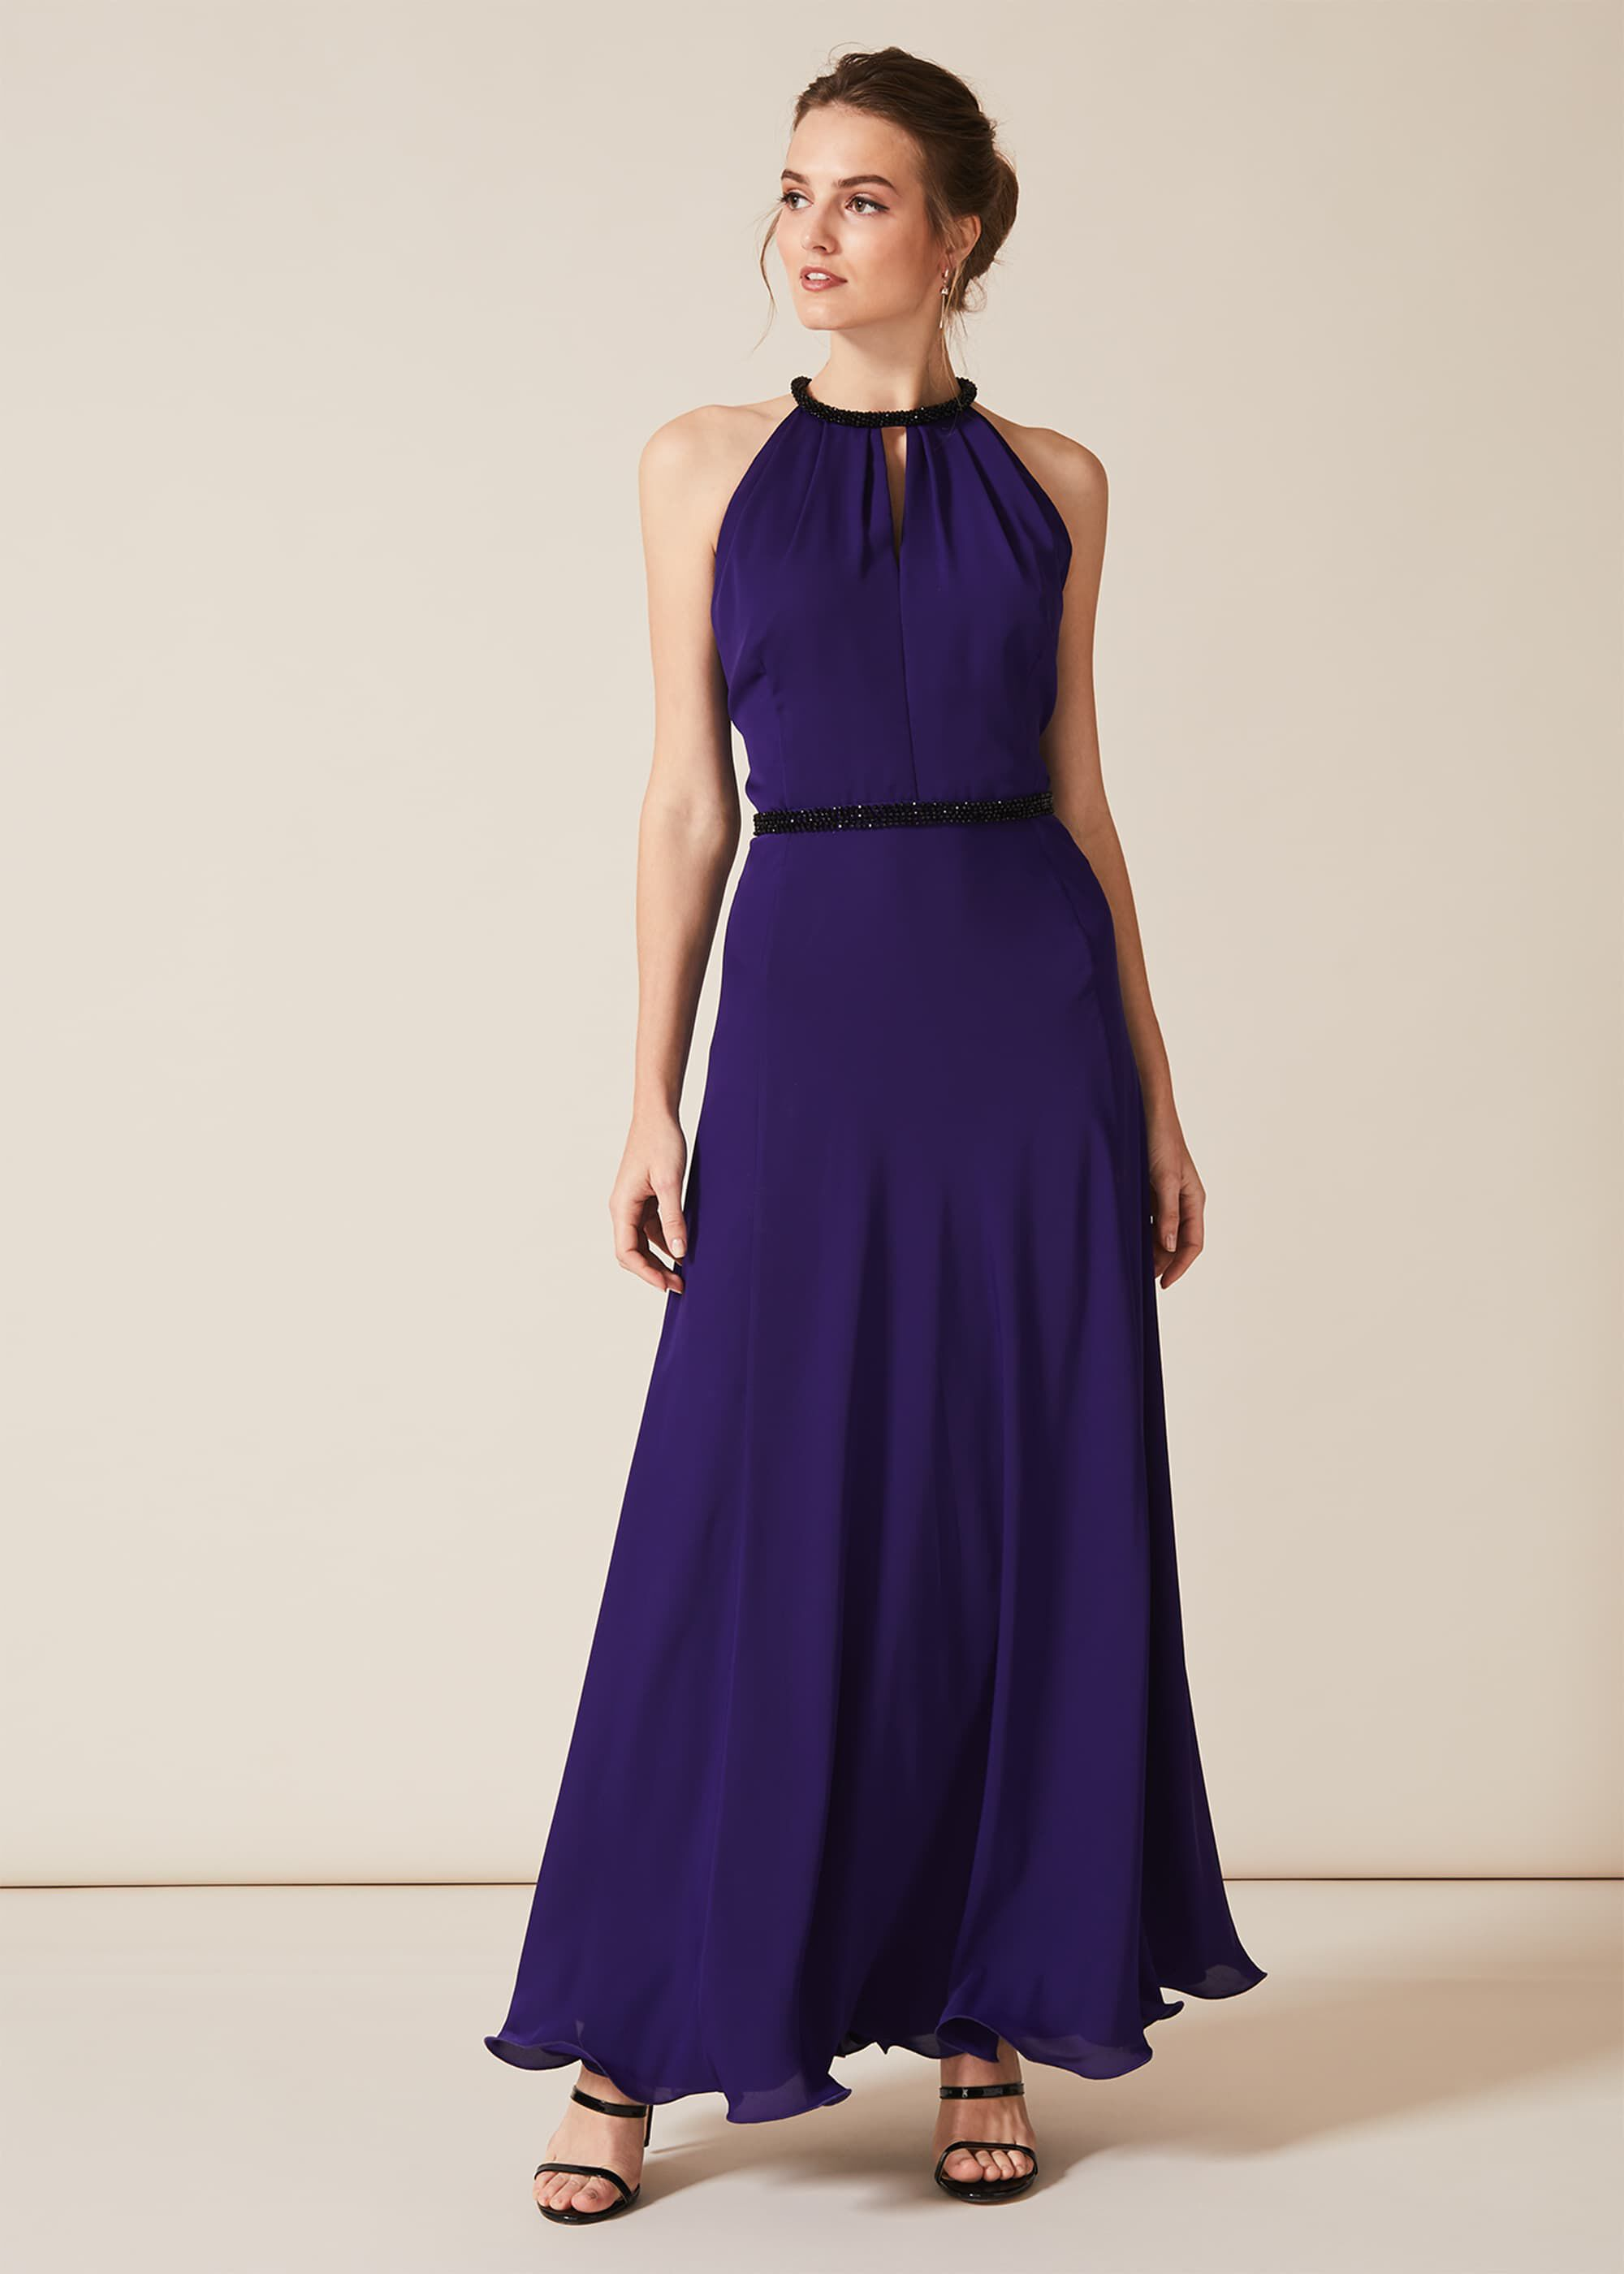 Phase Eight Perrie Maxi Dress, Purple, Maxi